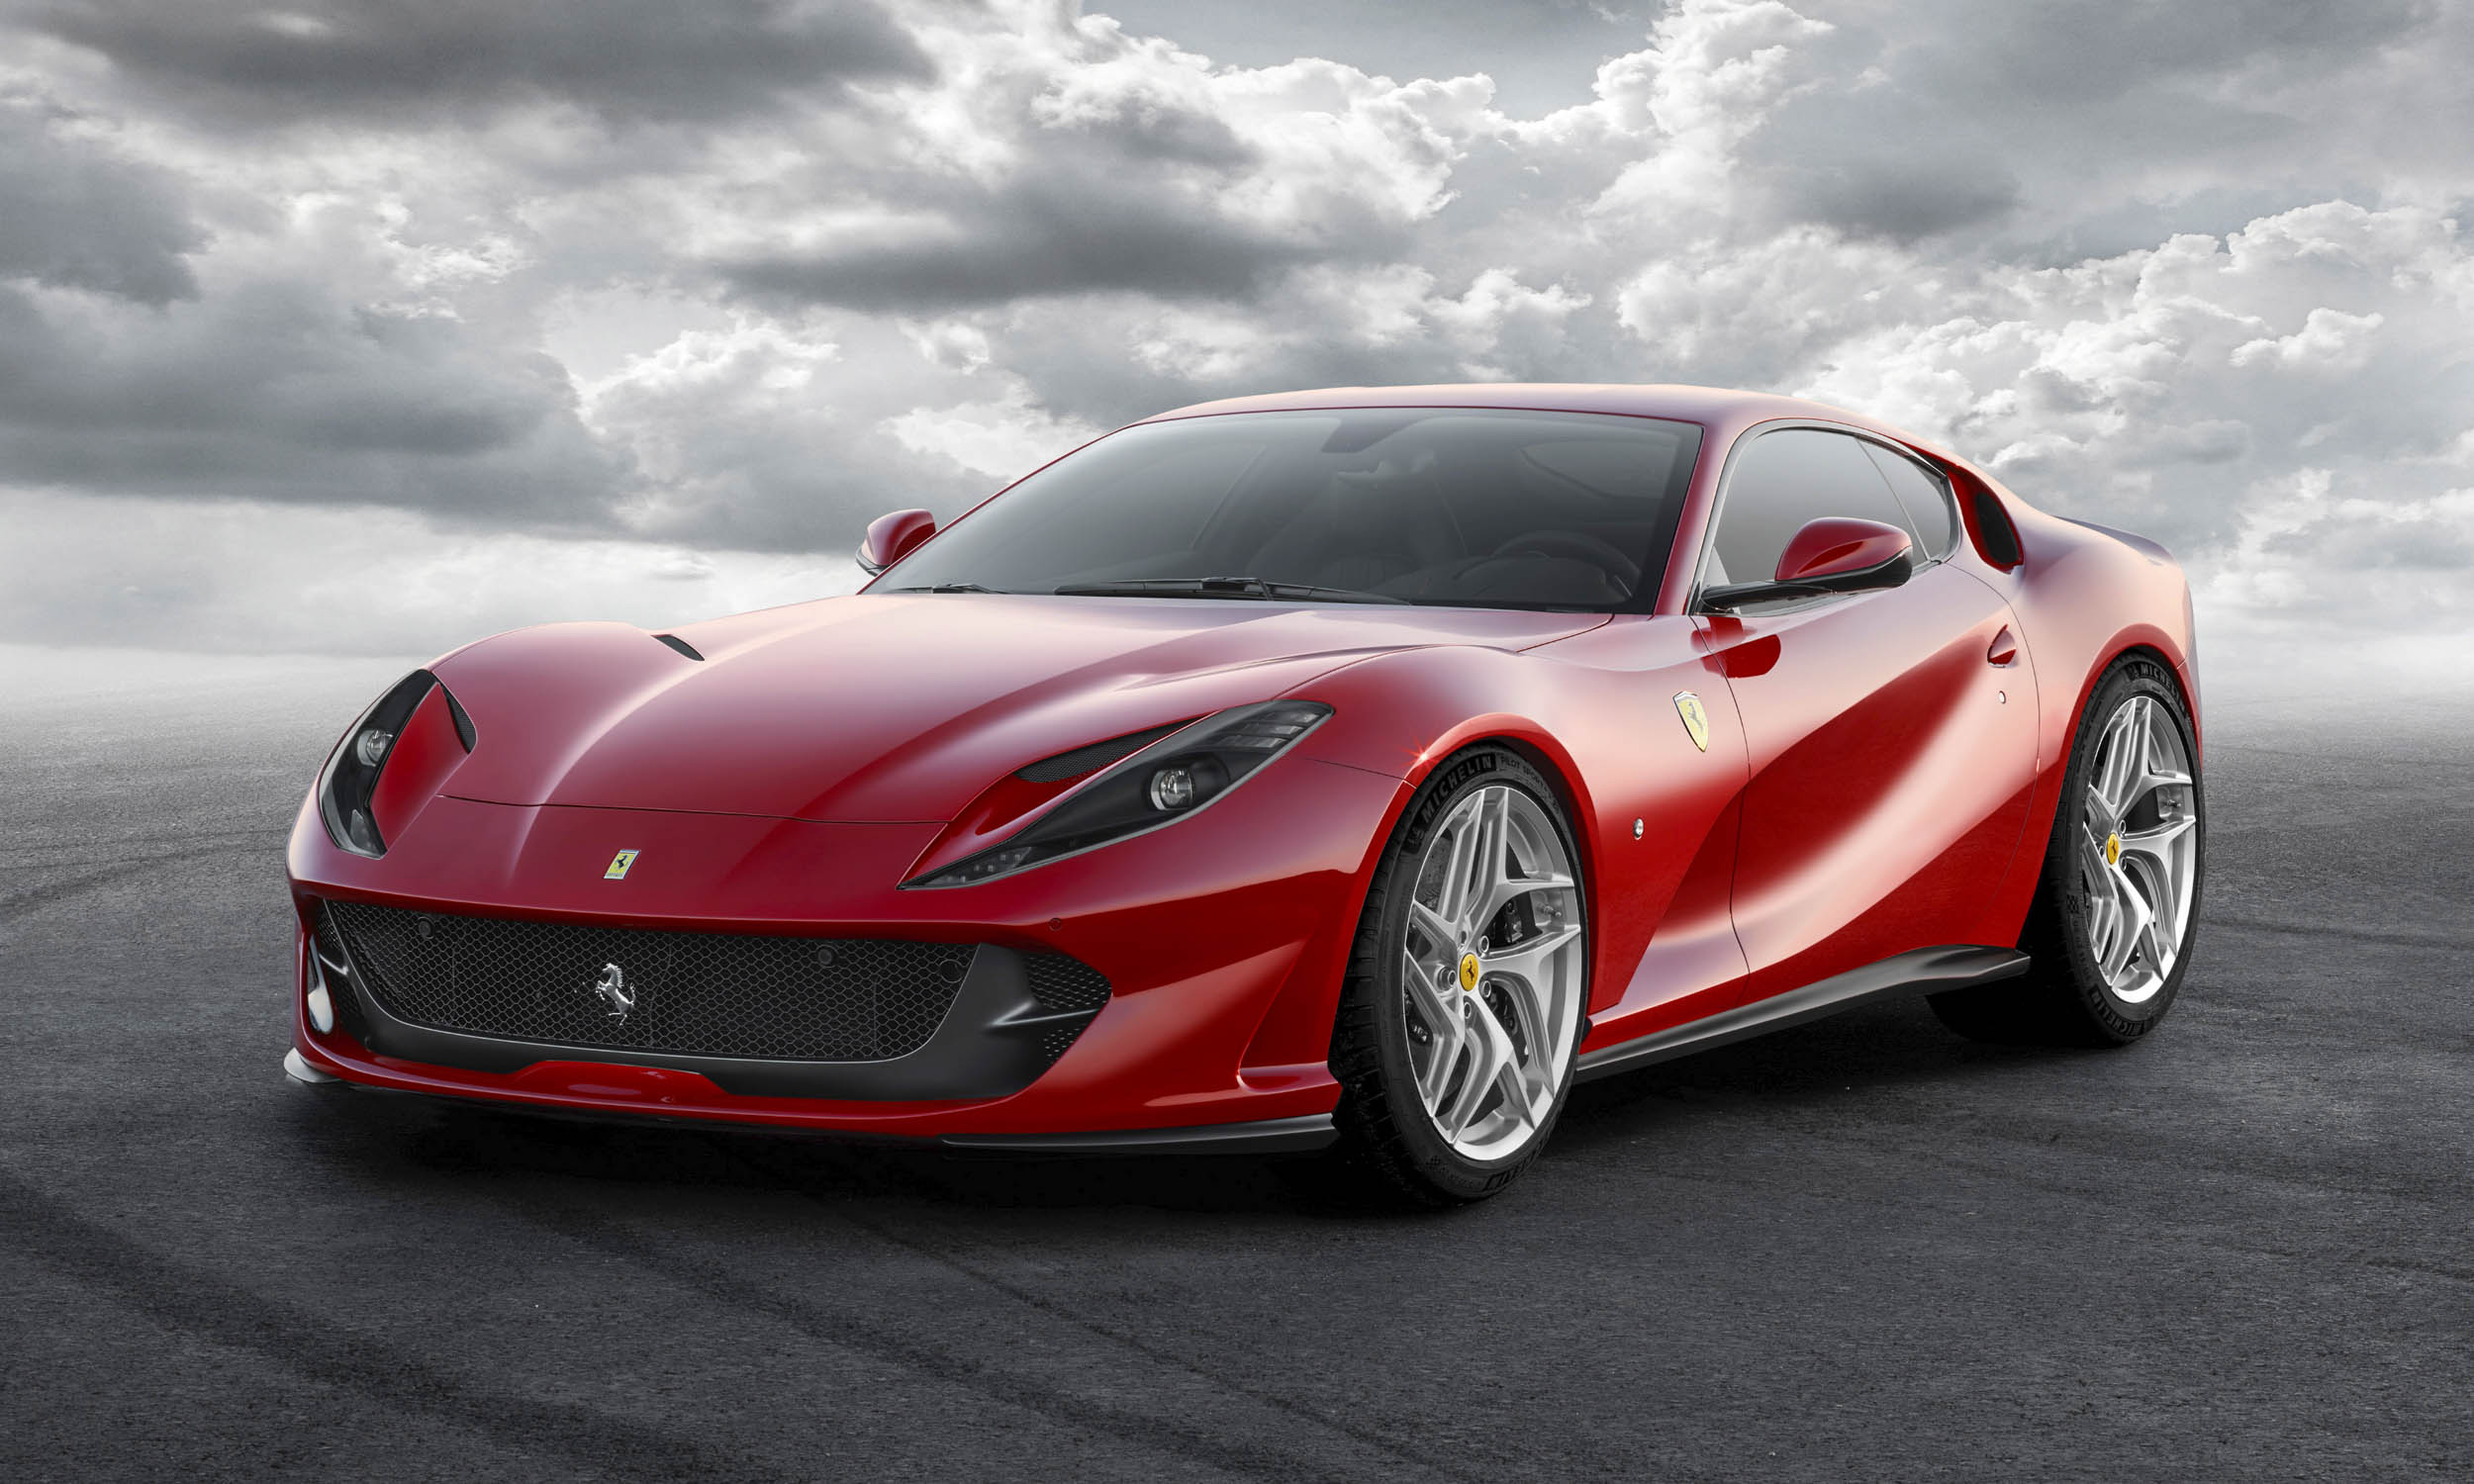 © Ferrari Cars North America